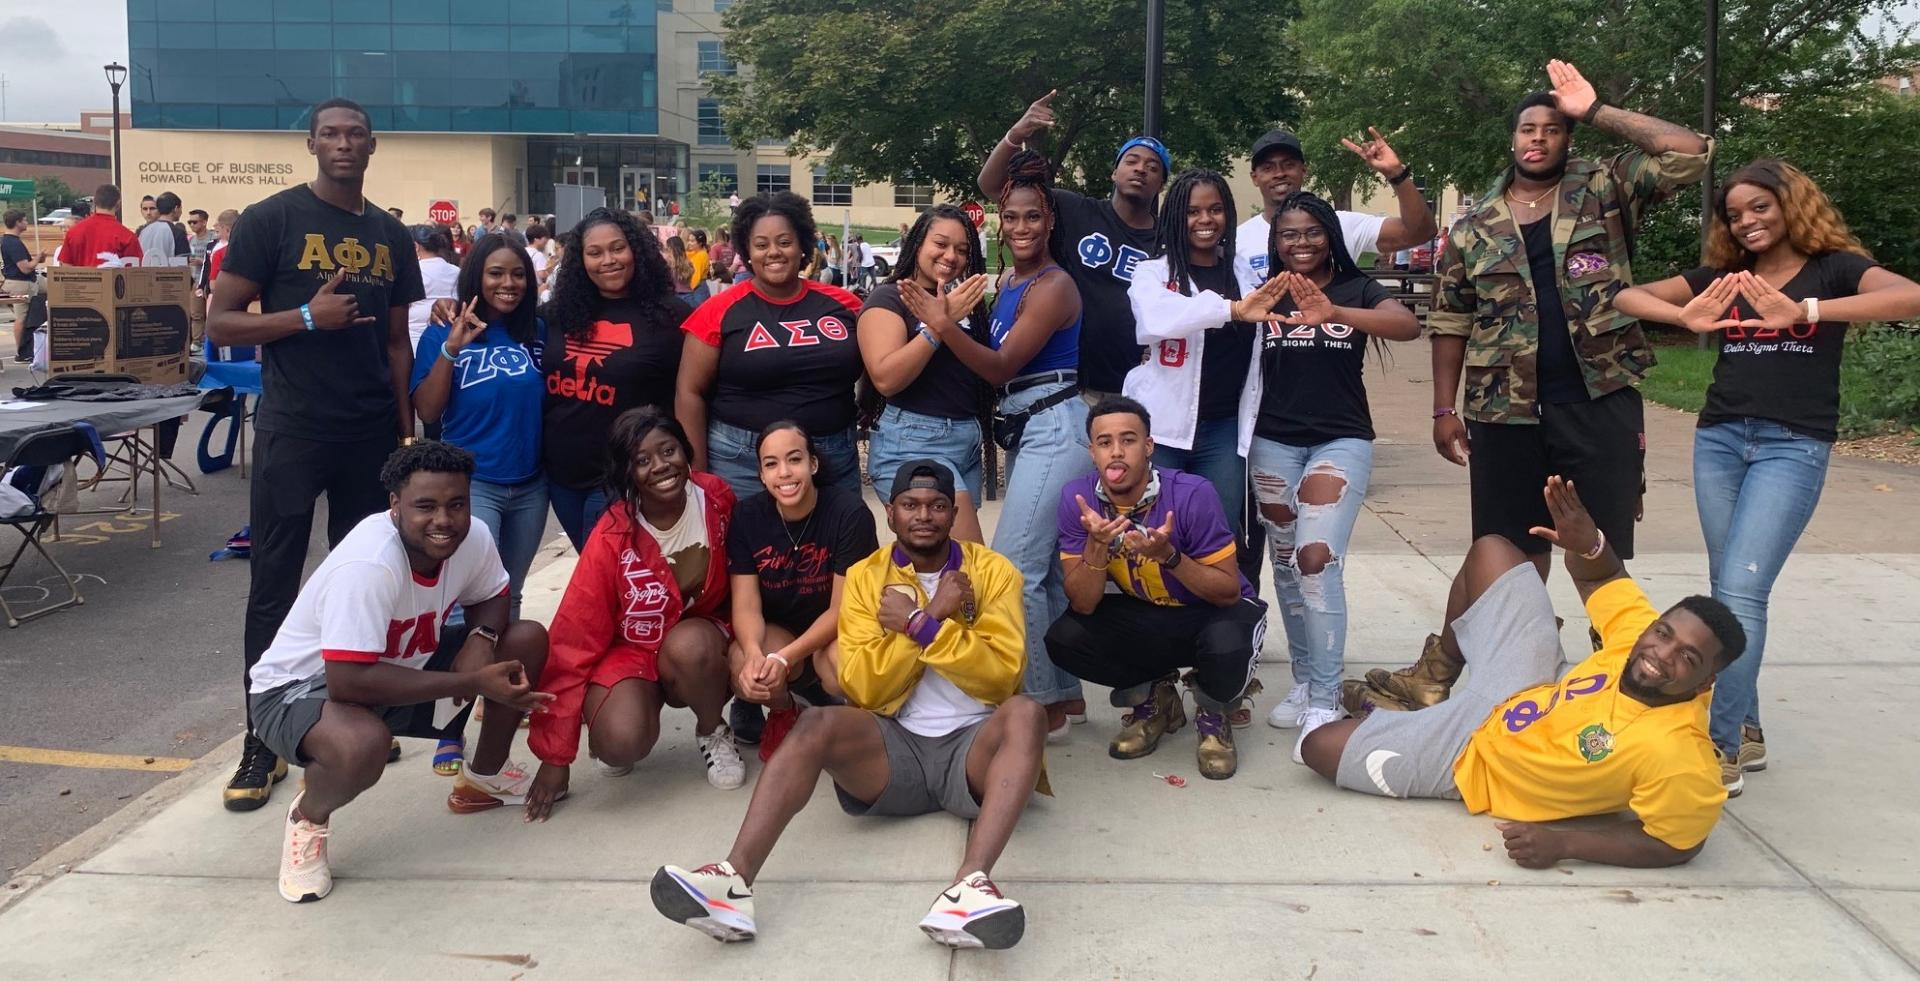 A Group Shot of the National Panhellenic Council